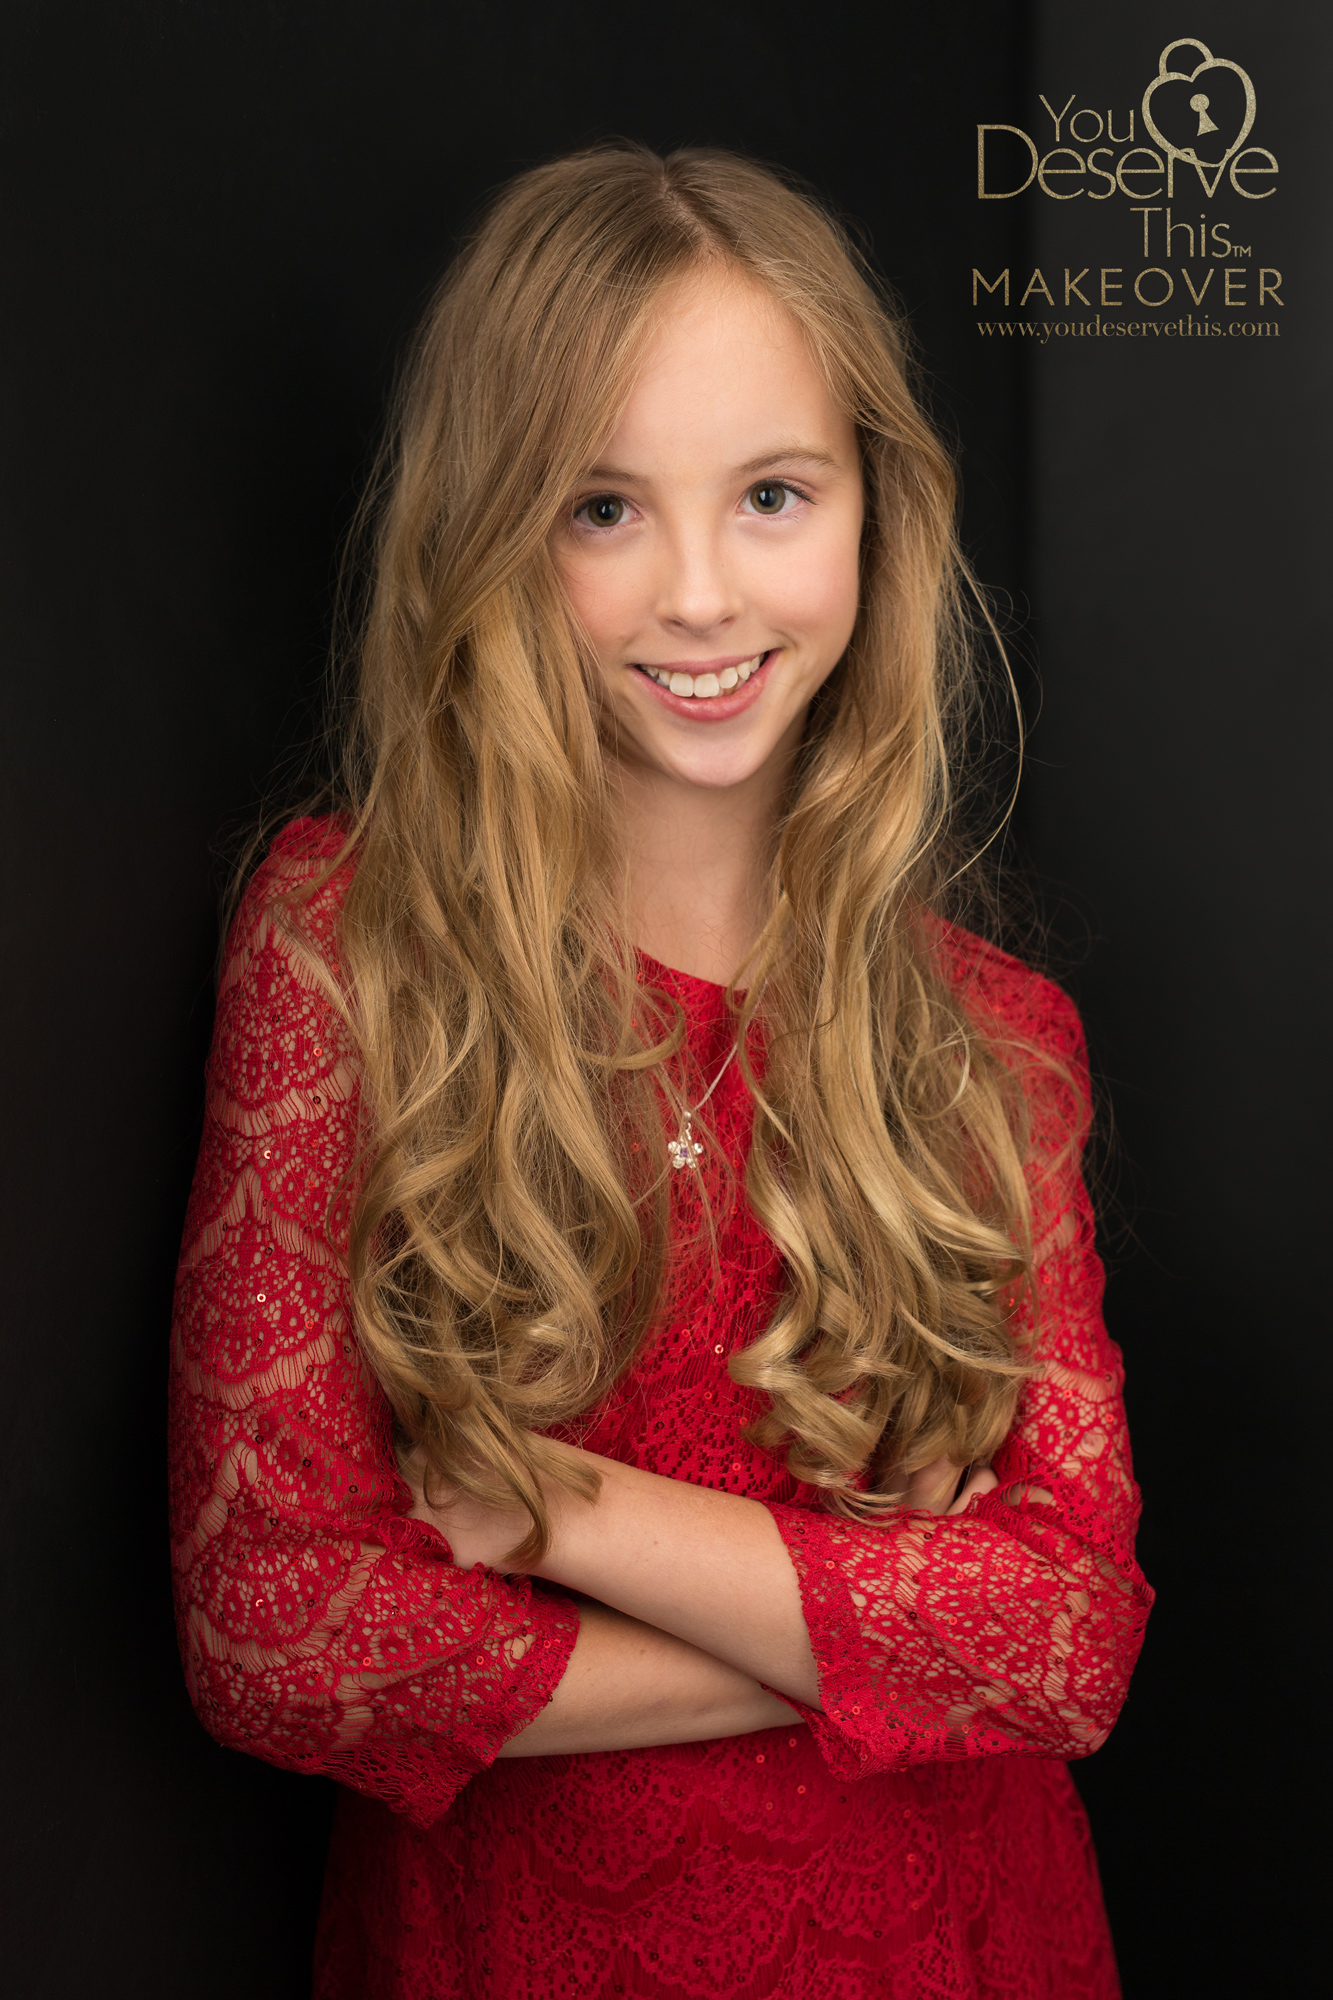 We love capturing your daughters character, a favourite red dress on our luxurious black backdrop creates a portrait that commands attention.  youdeservethis photography